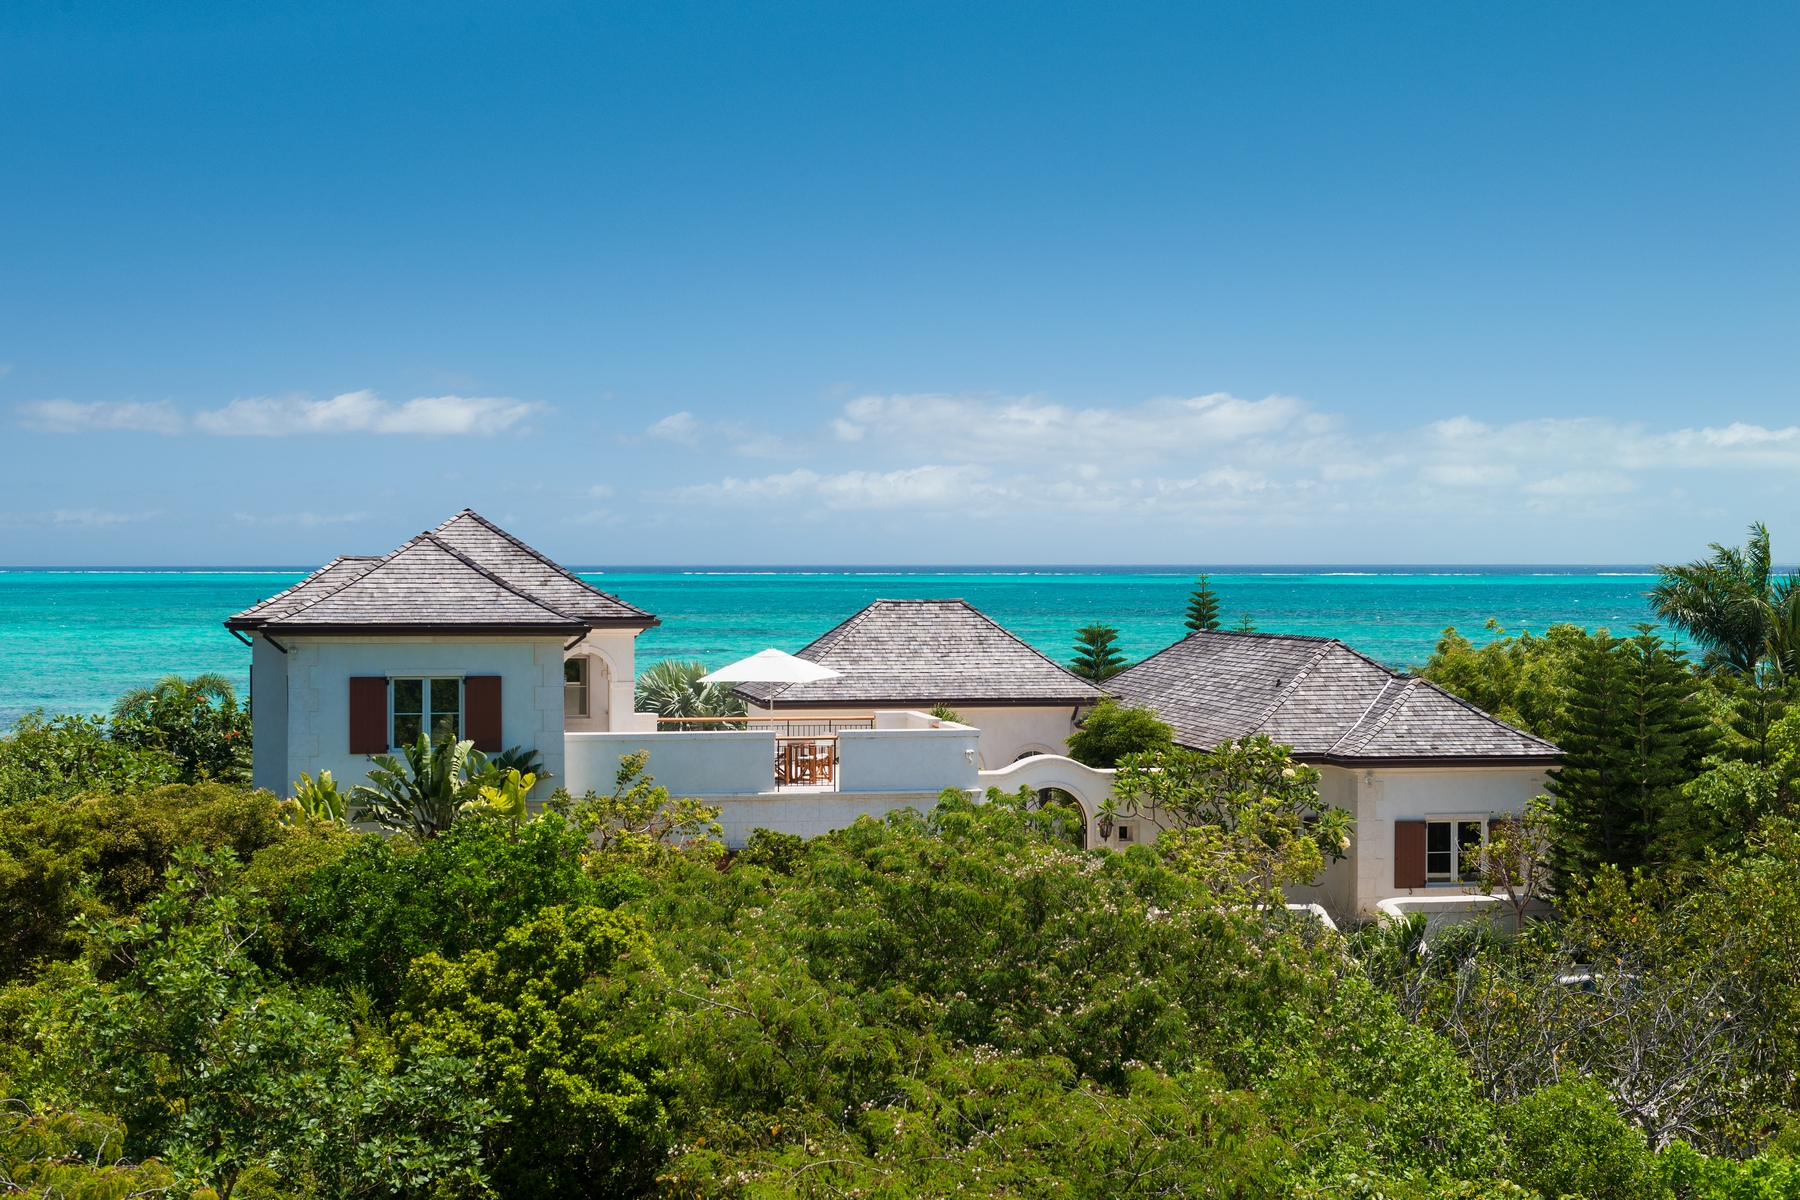 Additional photo for property listing at Casa Barana Beachfront Thompson Cove, Providenciales TCI BWI Islas Turcas Y Caicos